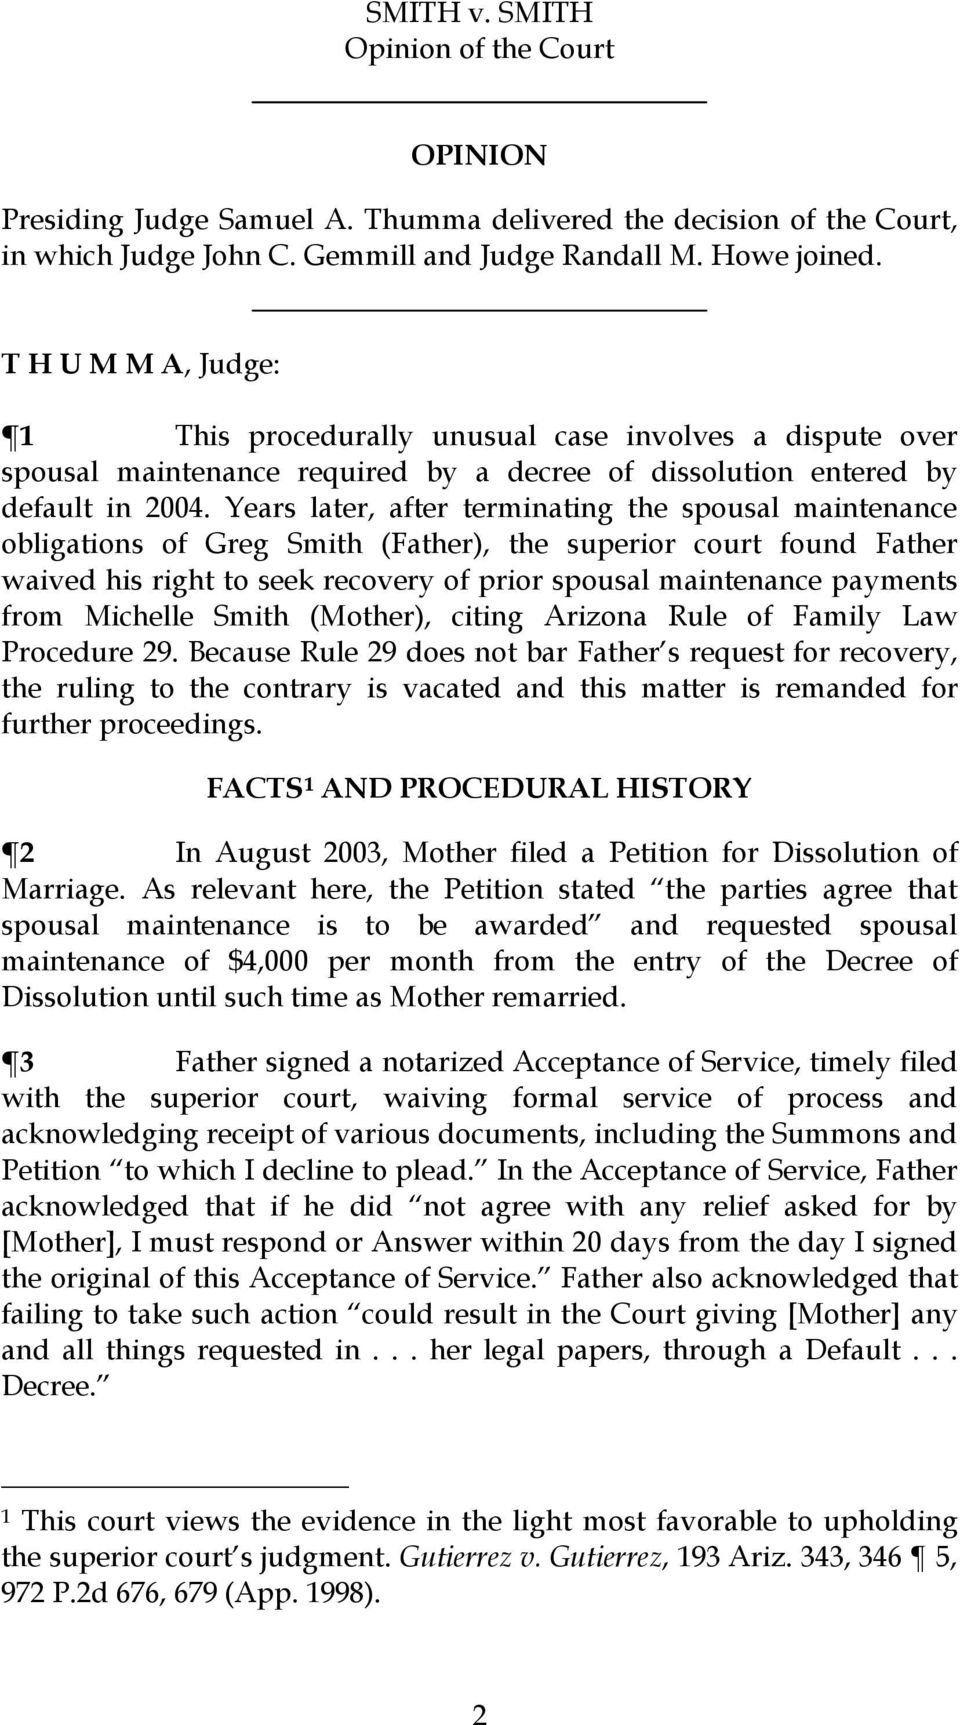 Years later, after terminating the spousal maintenance obligations of Greg Smith (Father), the superior court found Father waived his right to seek recovery of prior spousal maintenance payments from